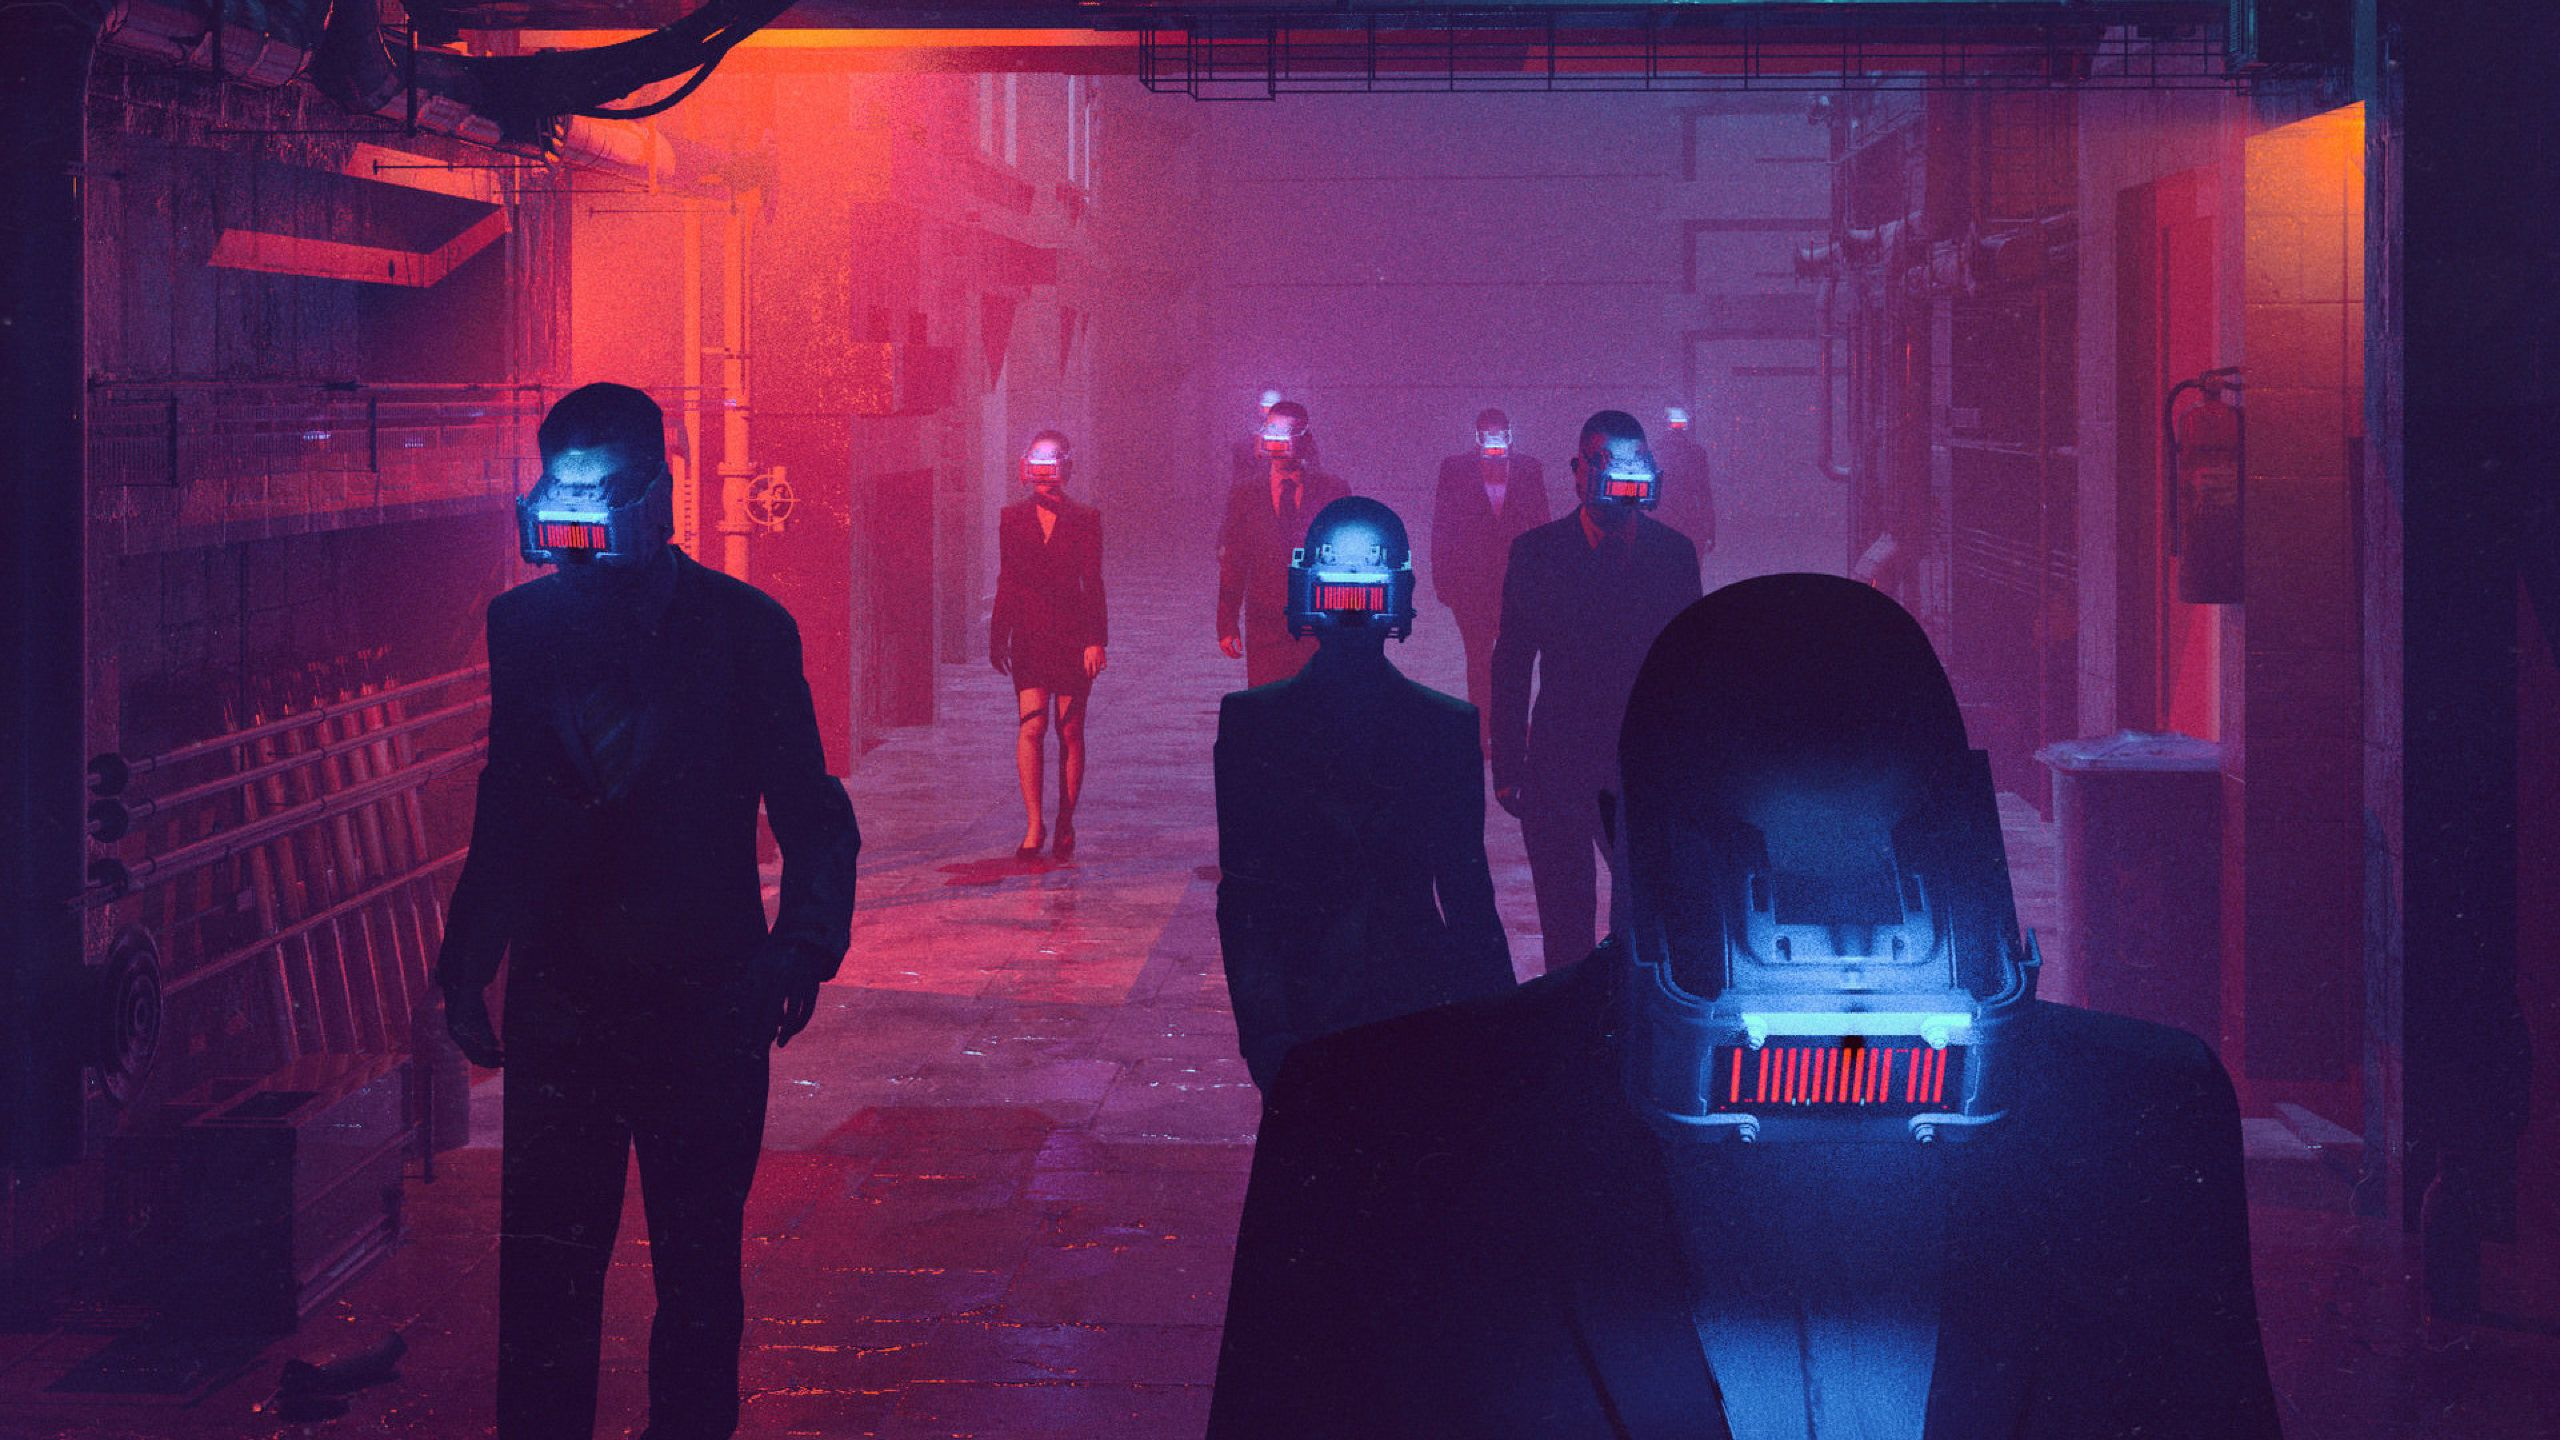 Anime Neon City Wallpapers Wallpaper Cave